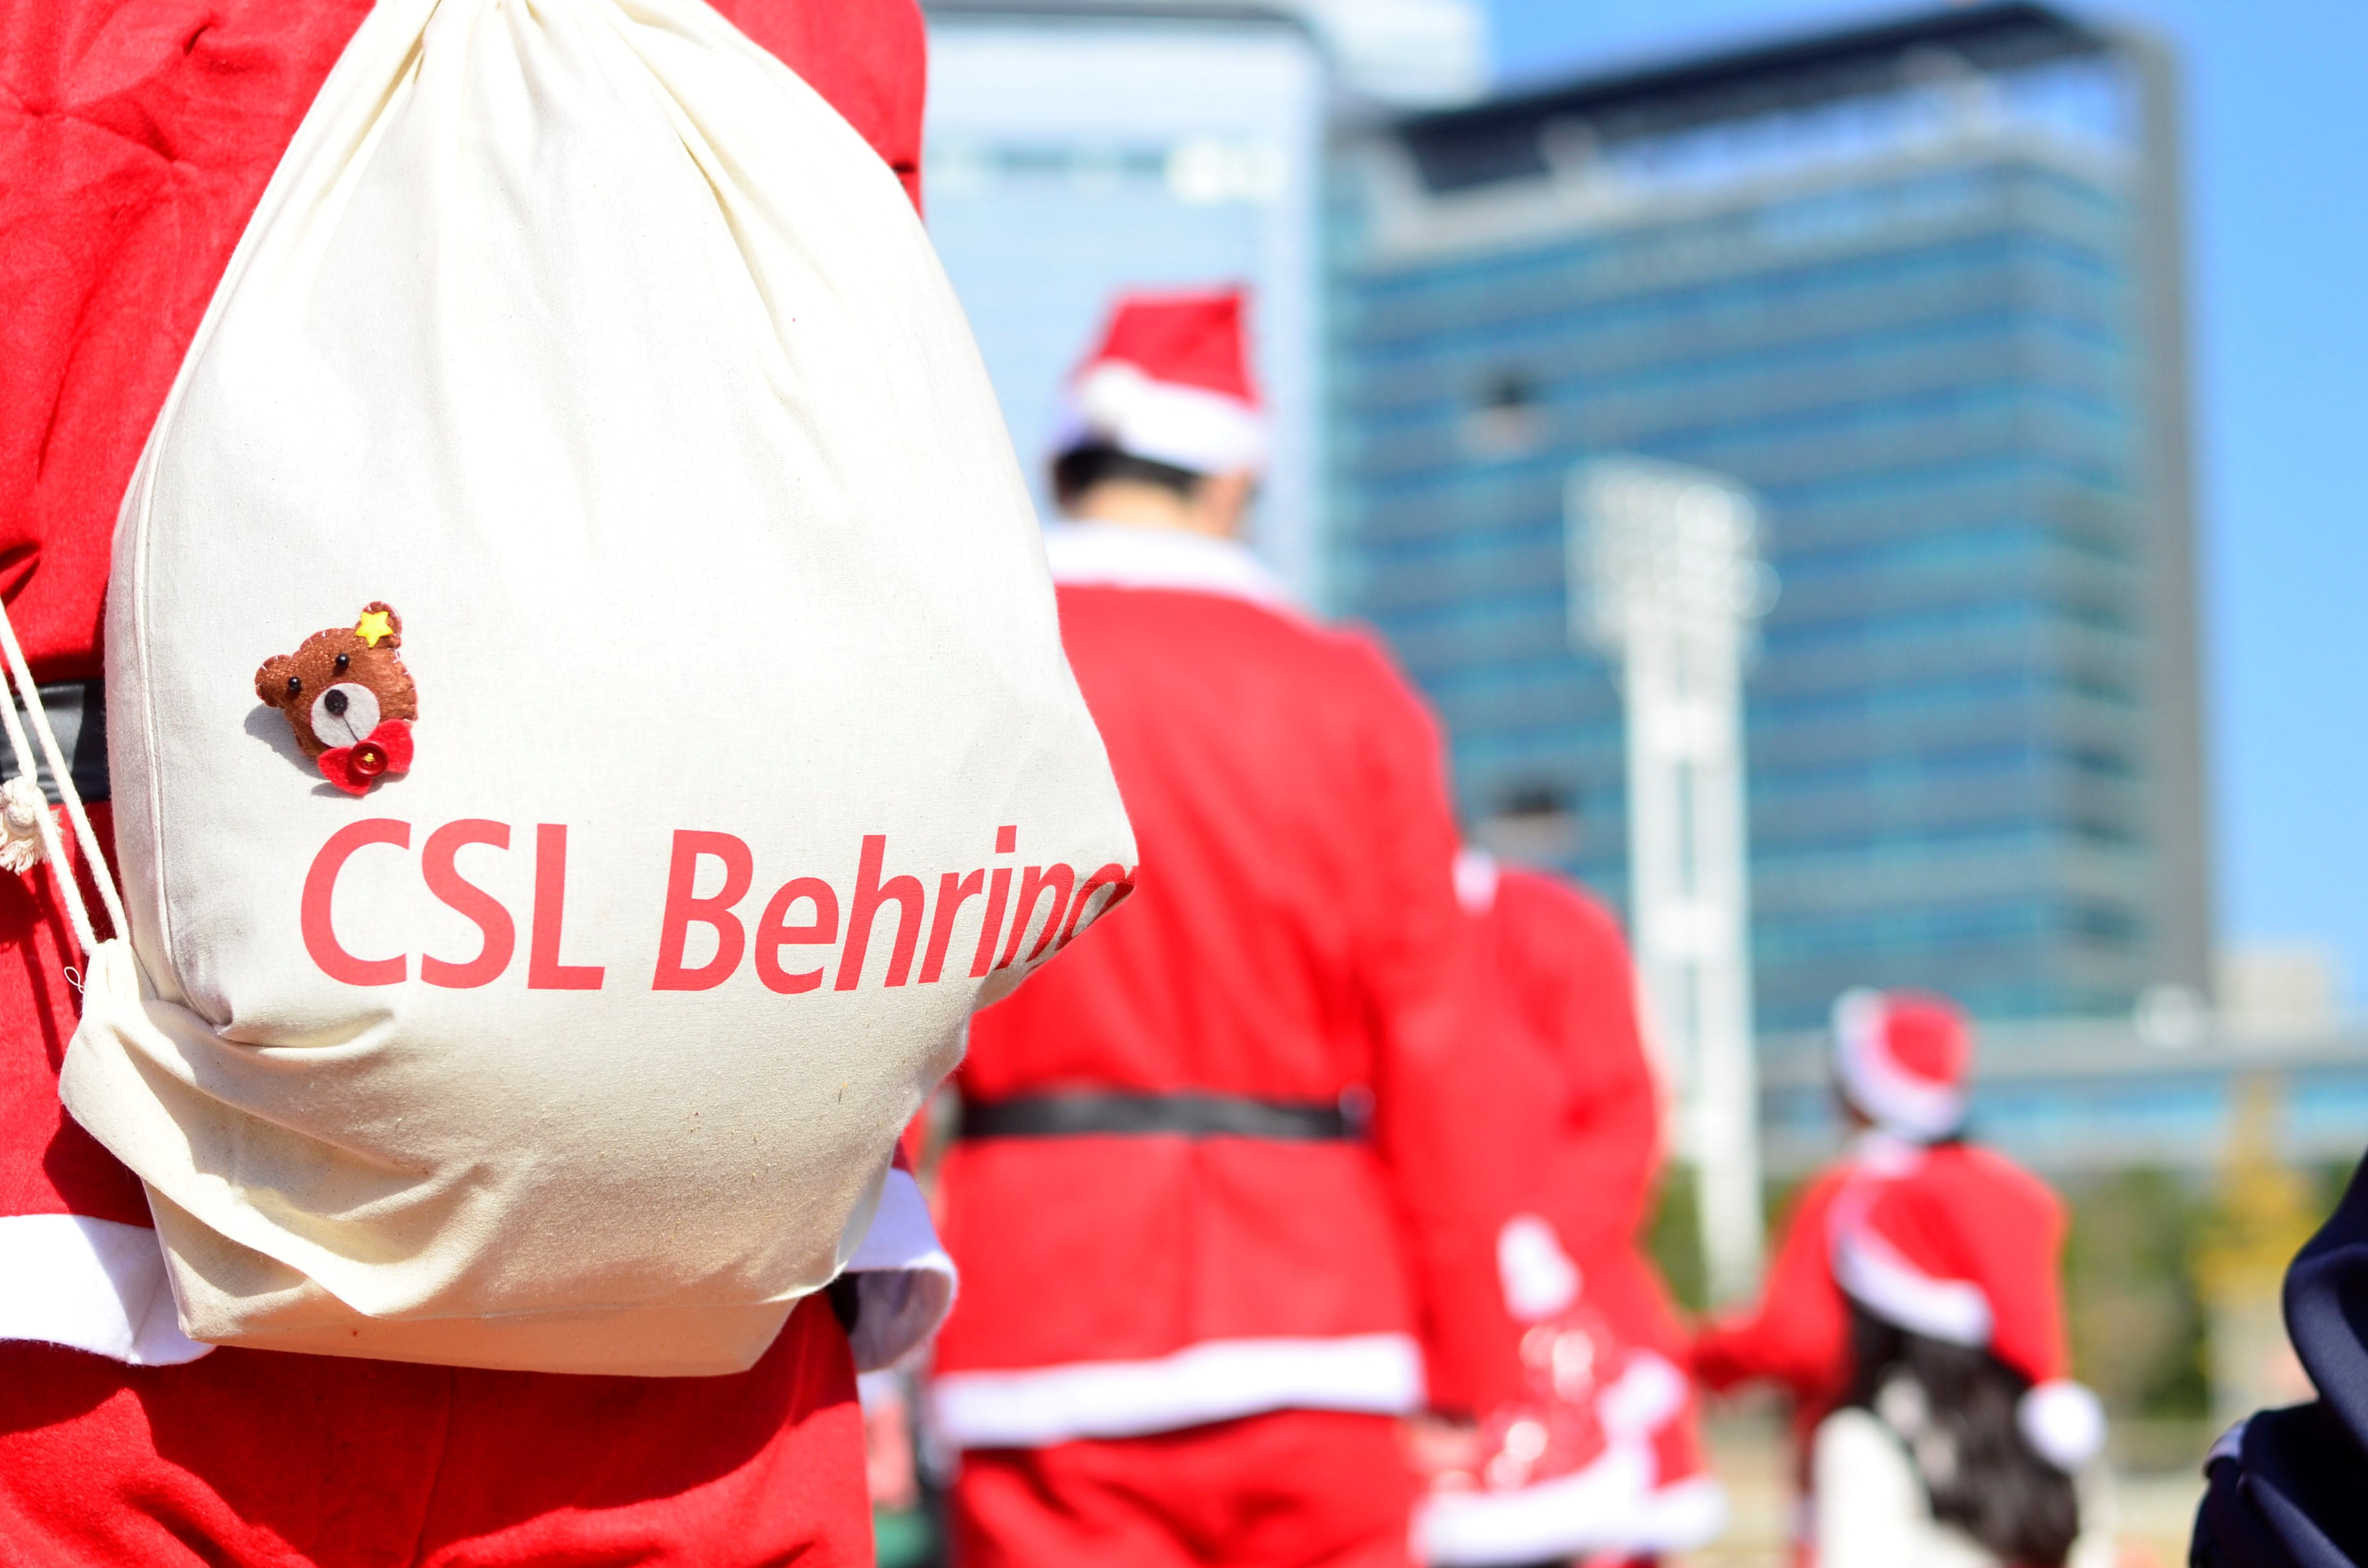 CSL Behring Image taken at the Great Santa Run